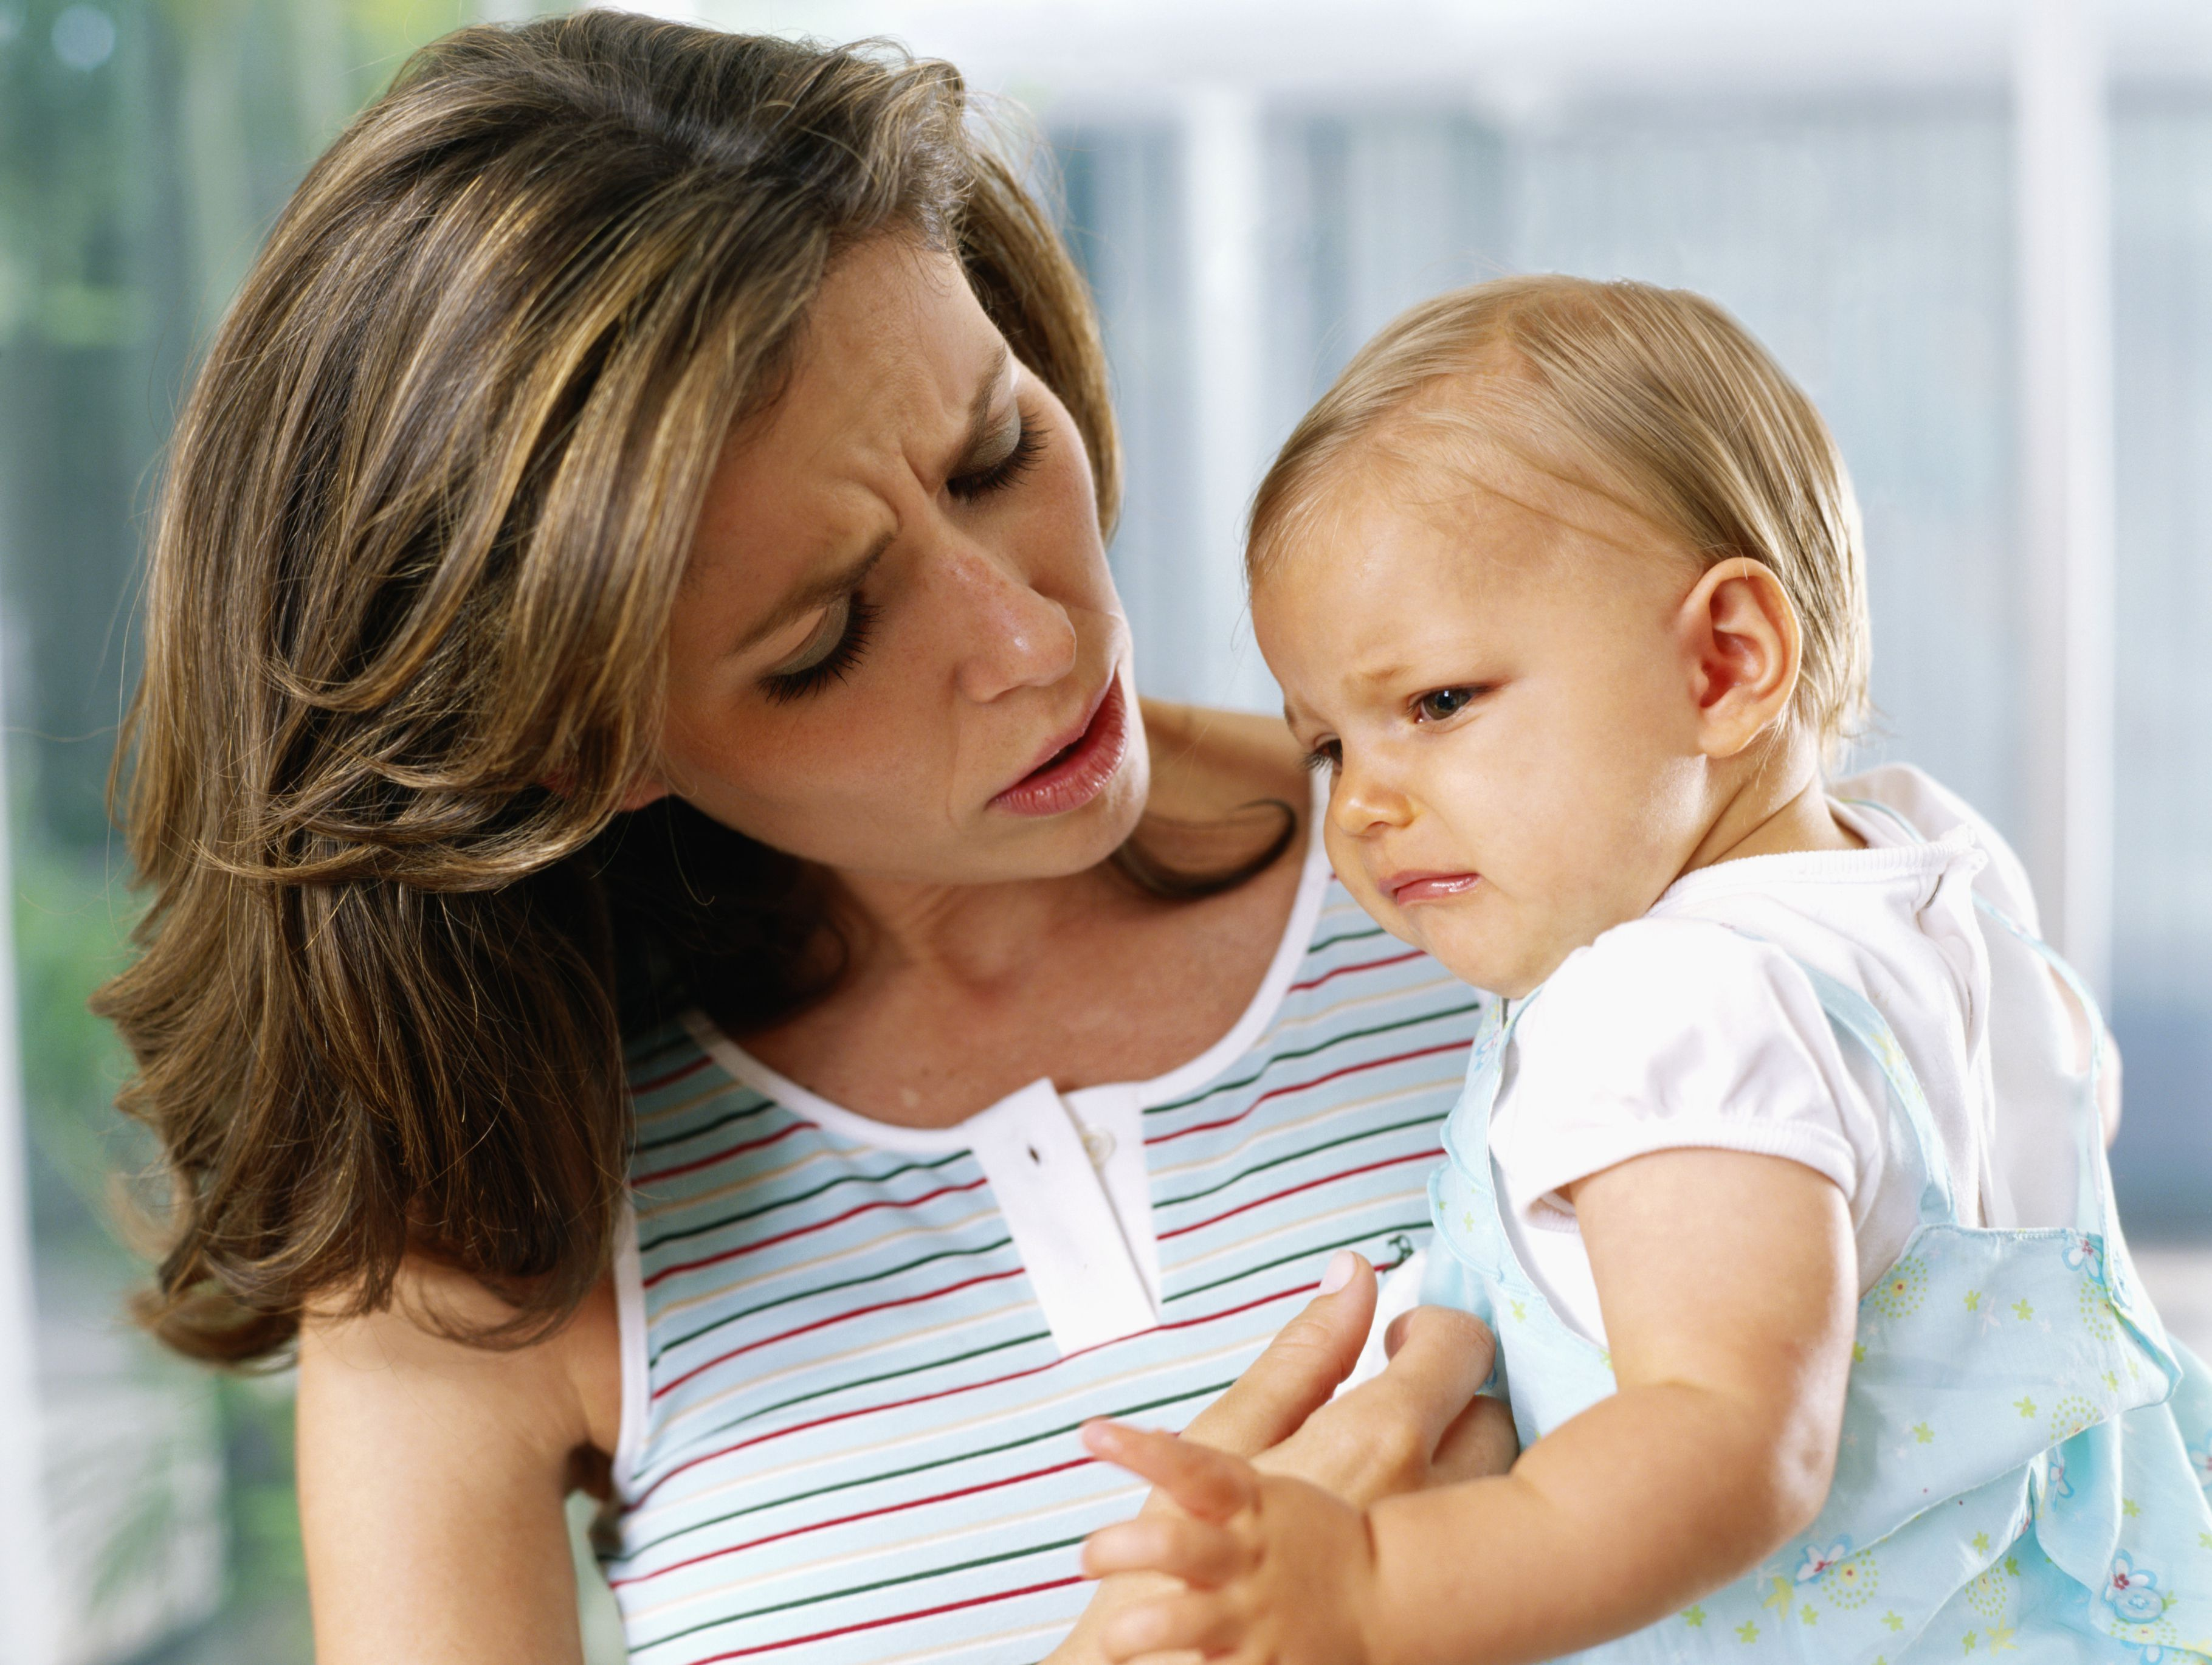 What To Do When Your Baby Wont Breastfeed-7057